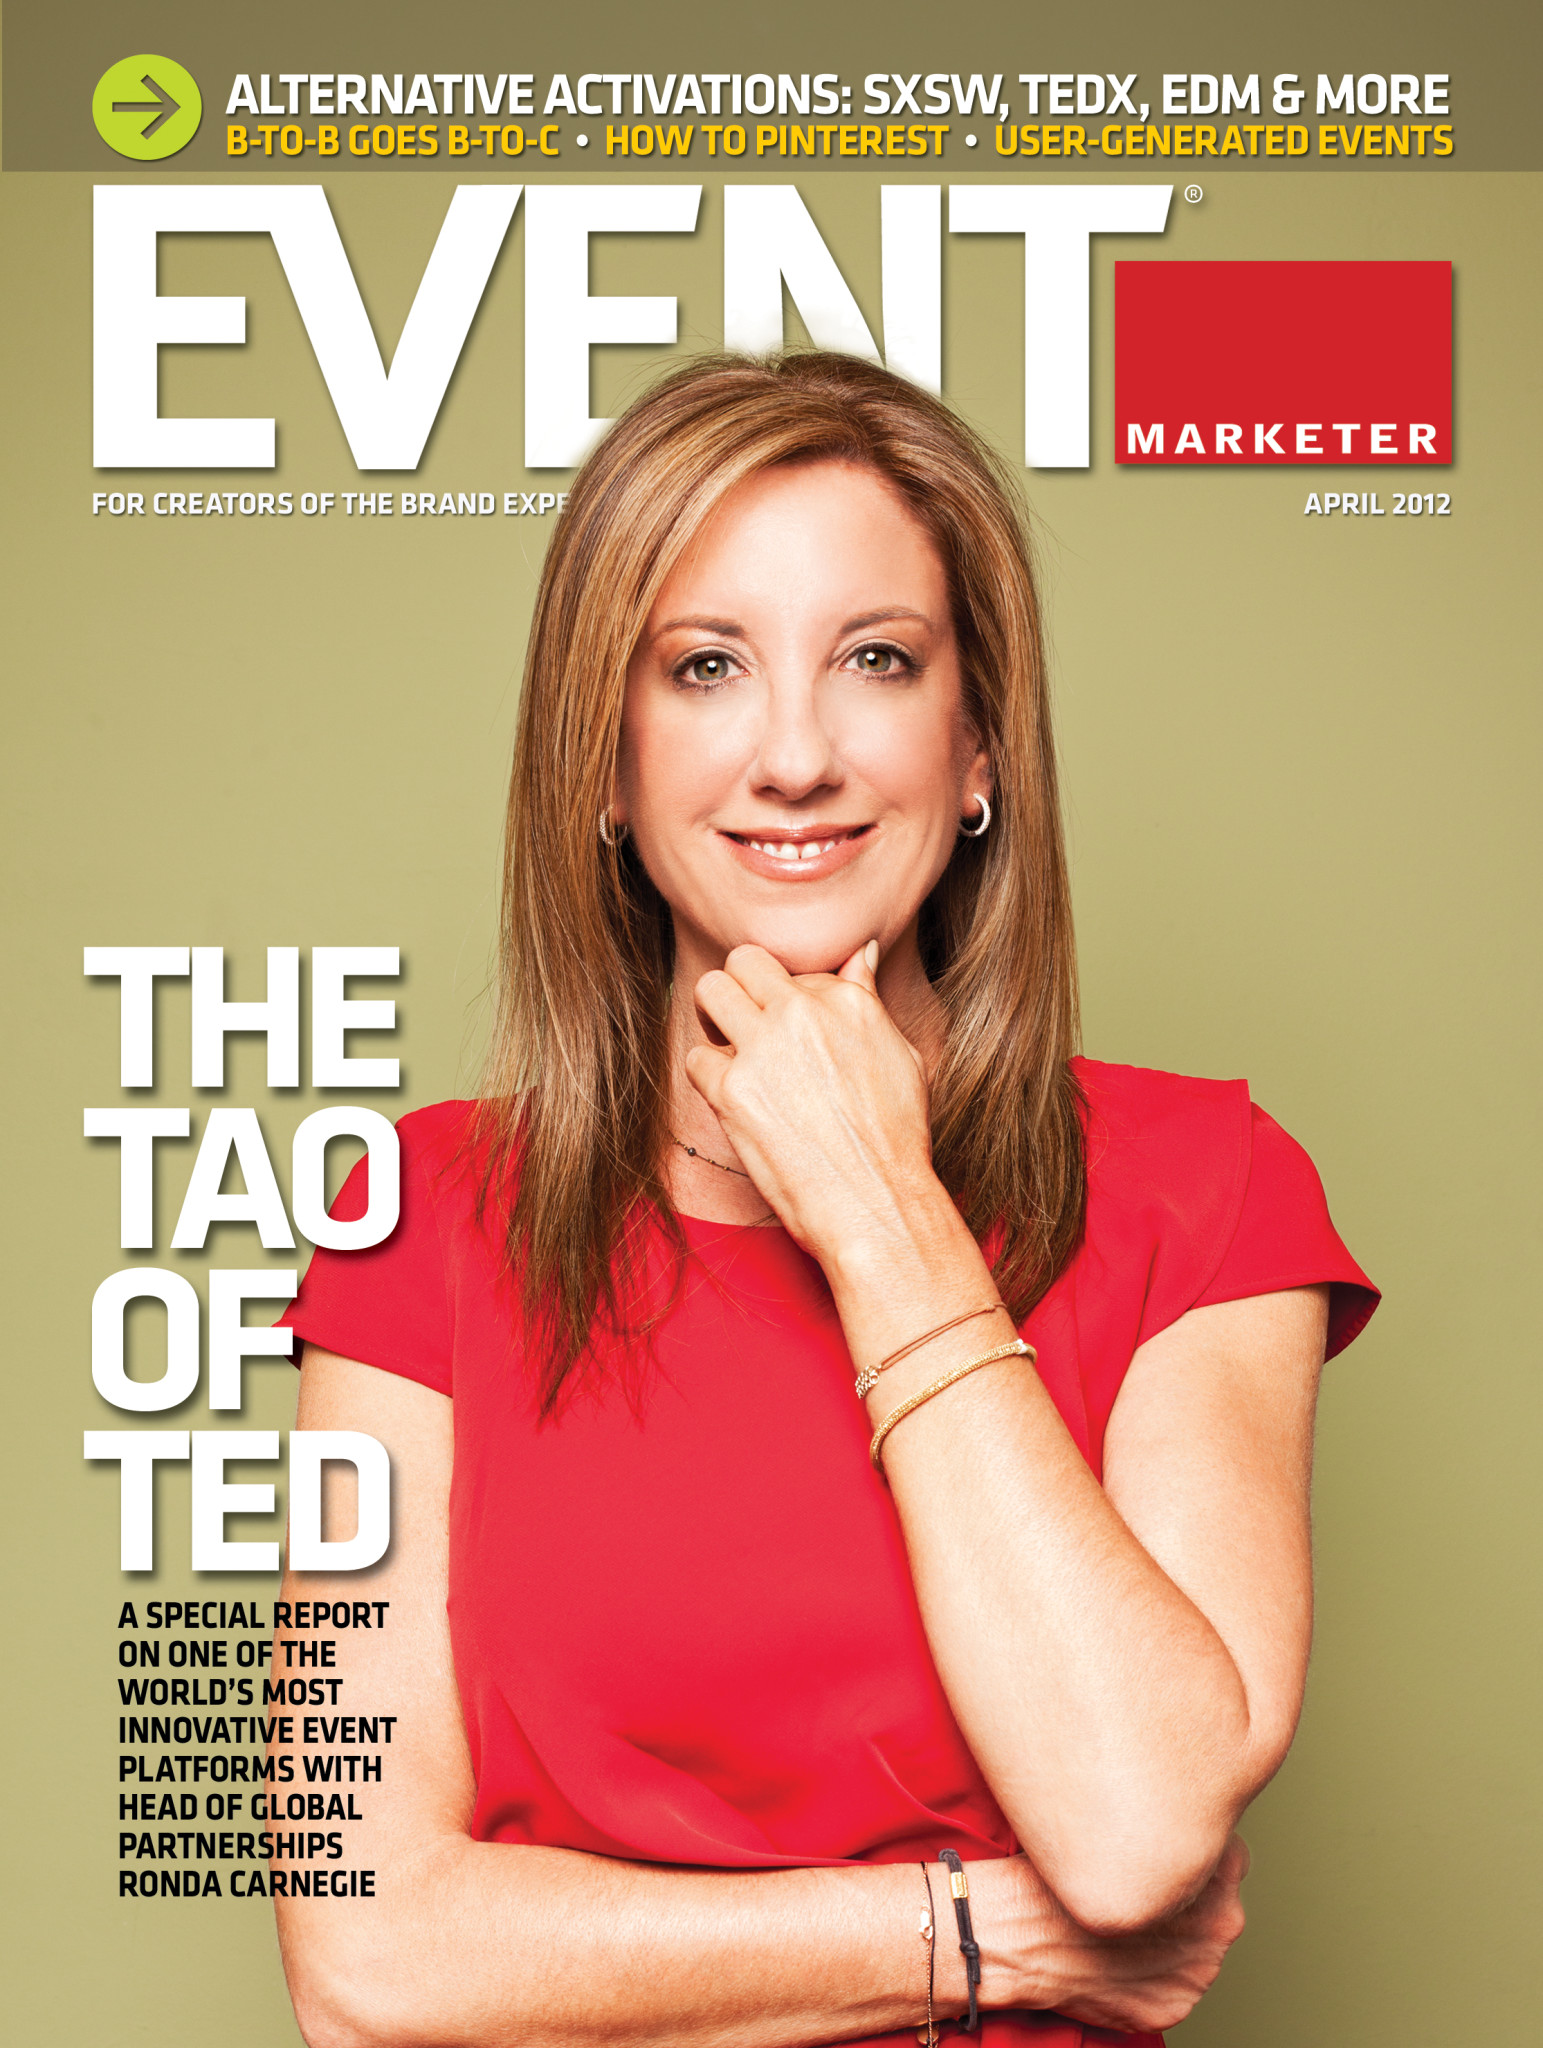 Event Marketer April 2012 Issue